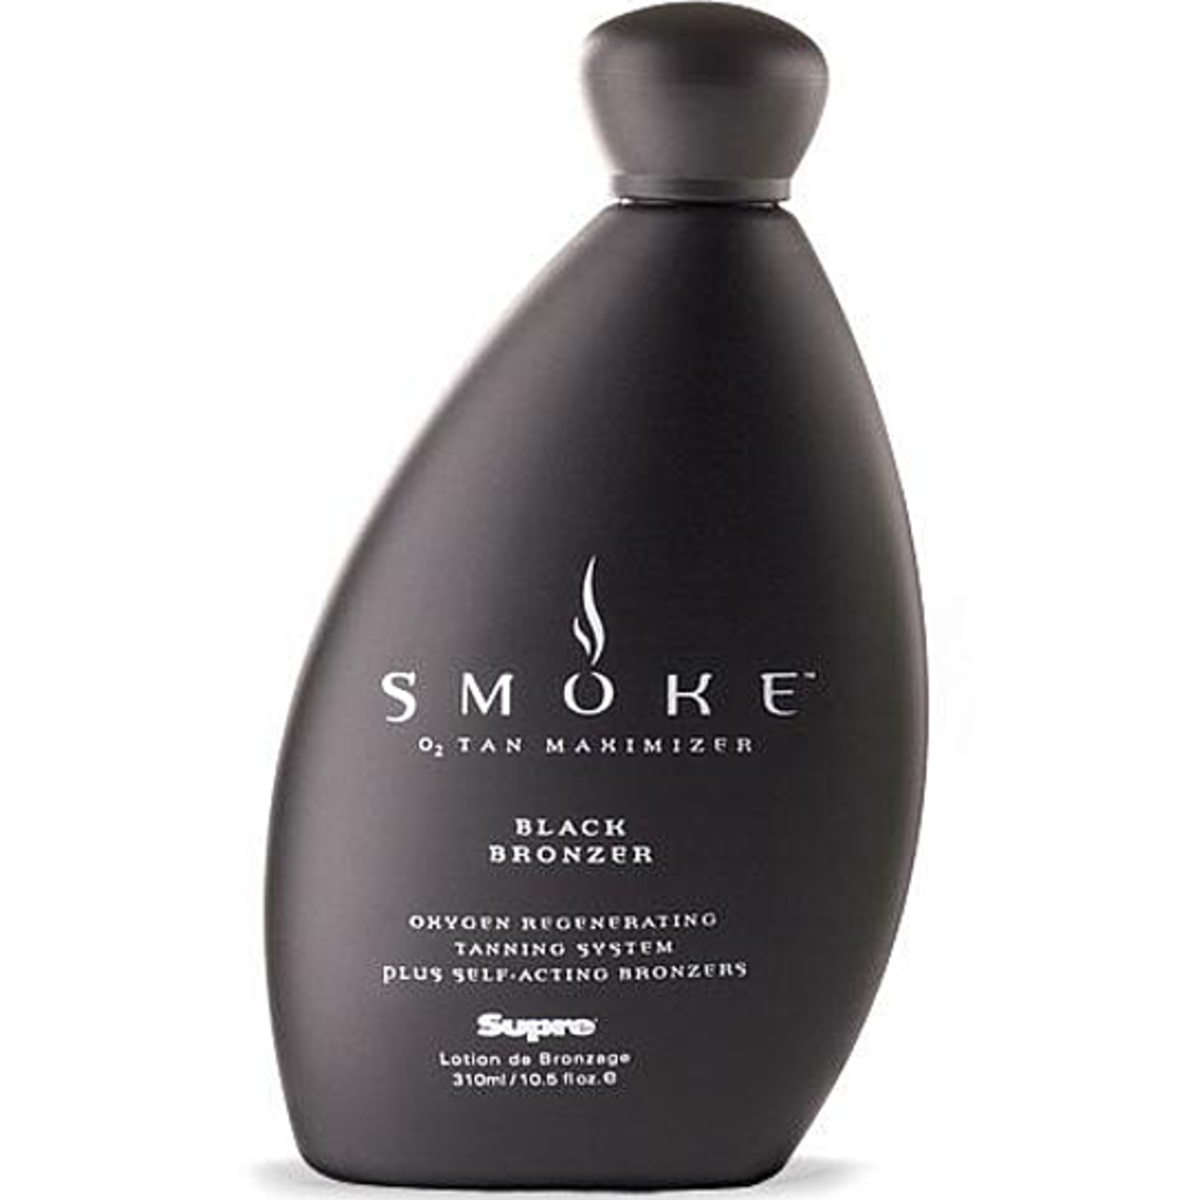 Supre's Smoke Black Bronzer is great for men and women. It enhances your tan, smells great, and keeps your skin moist.